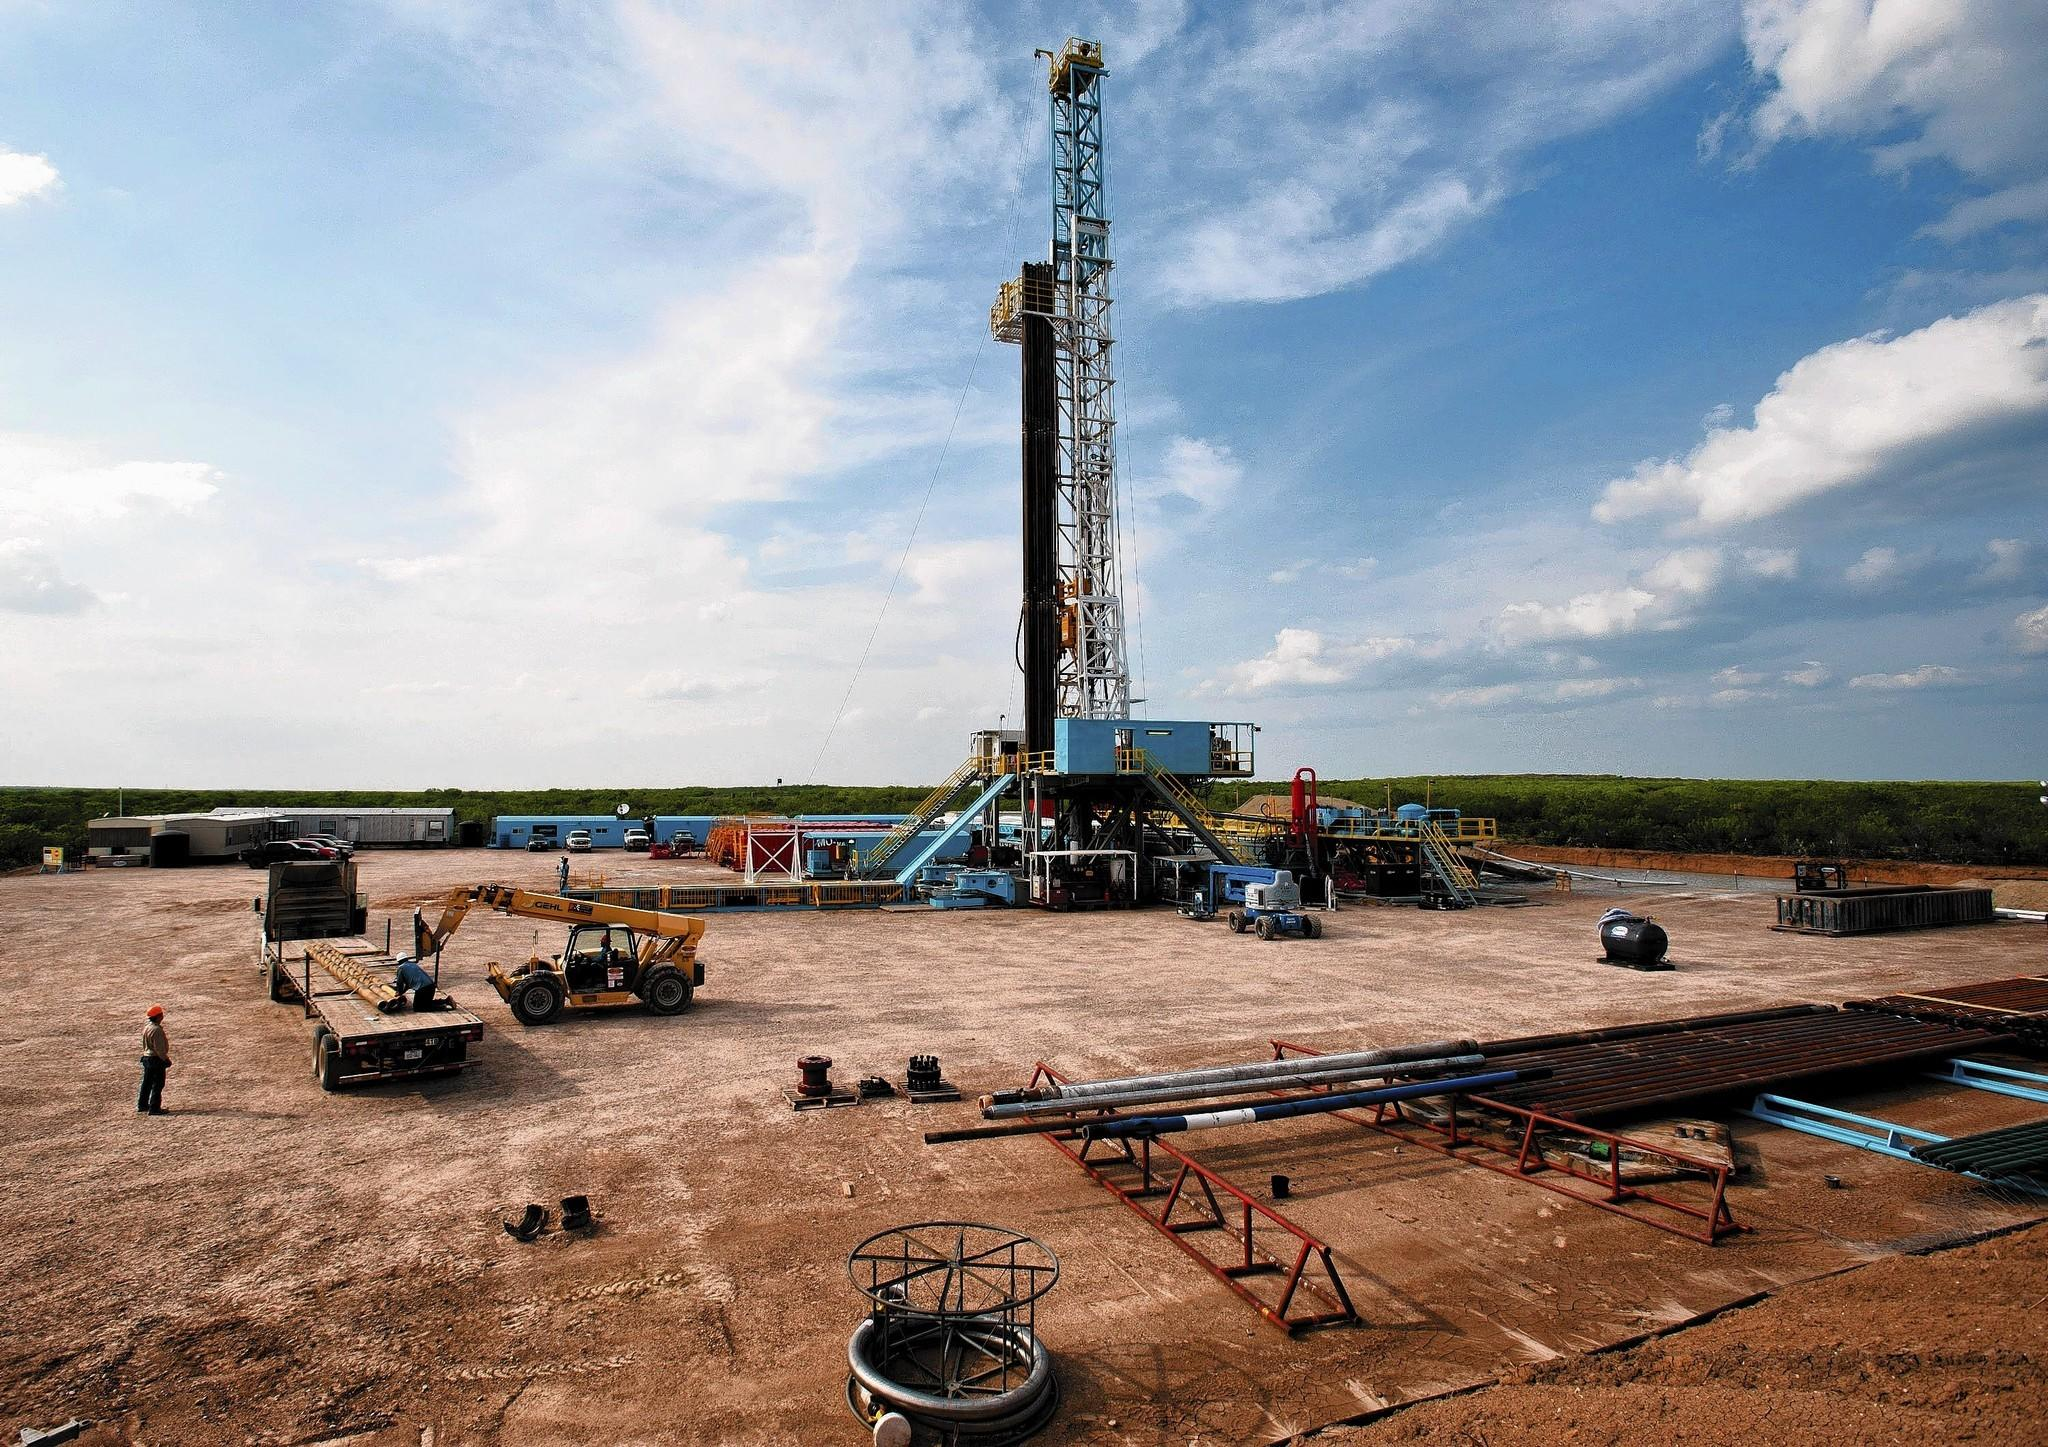 Effective Rig Count Exceeds 2,000 for the First Time